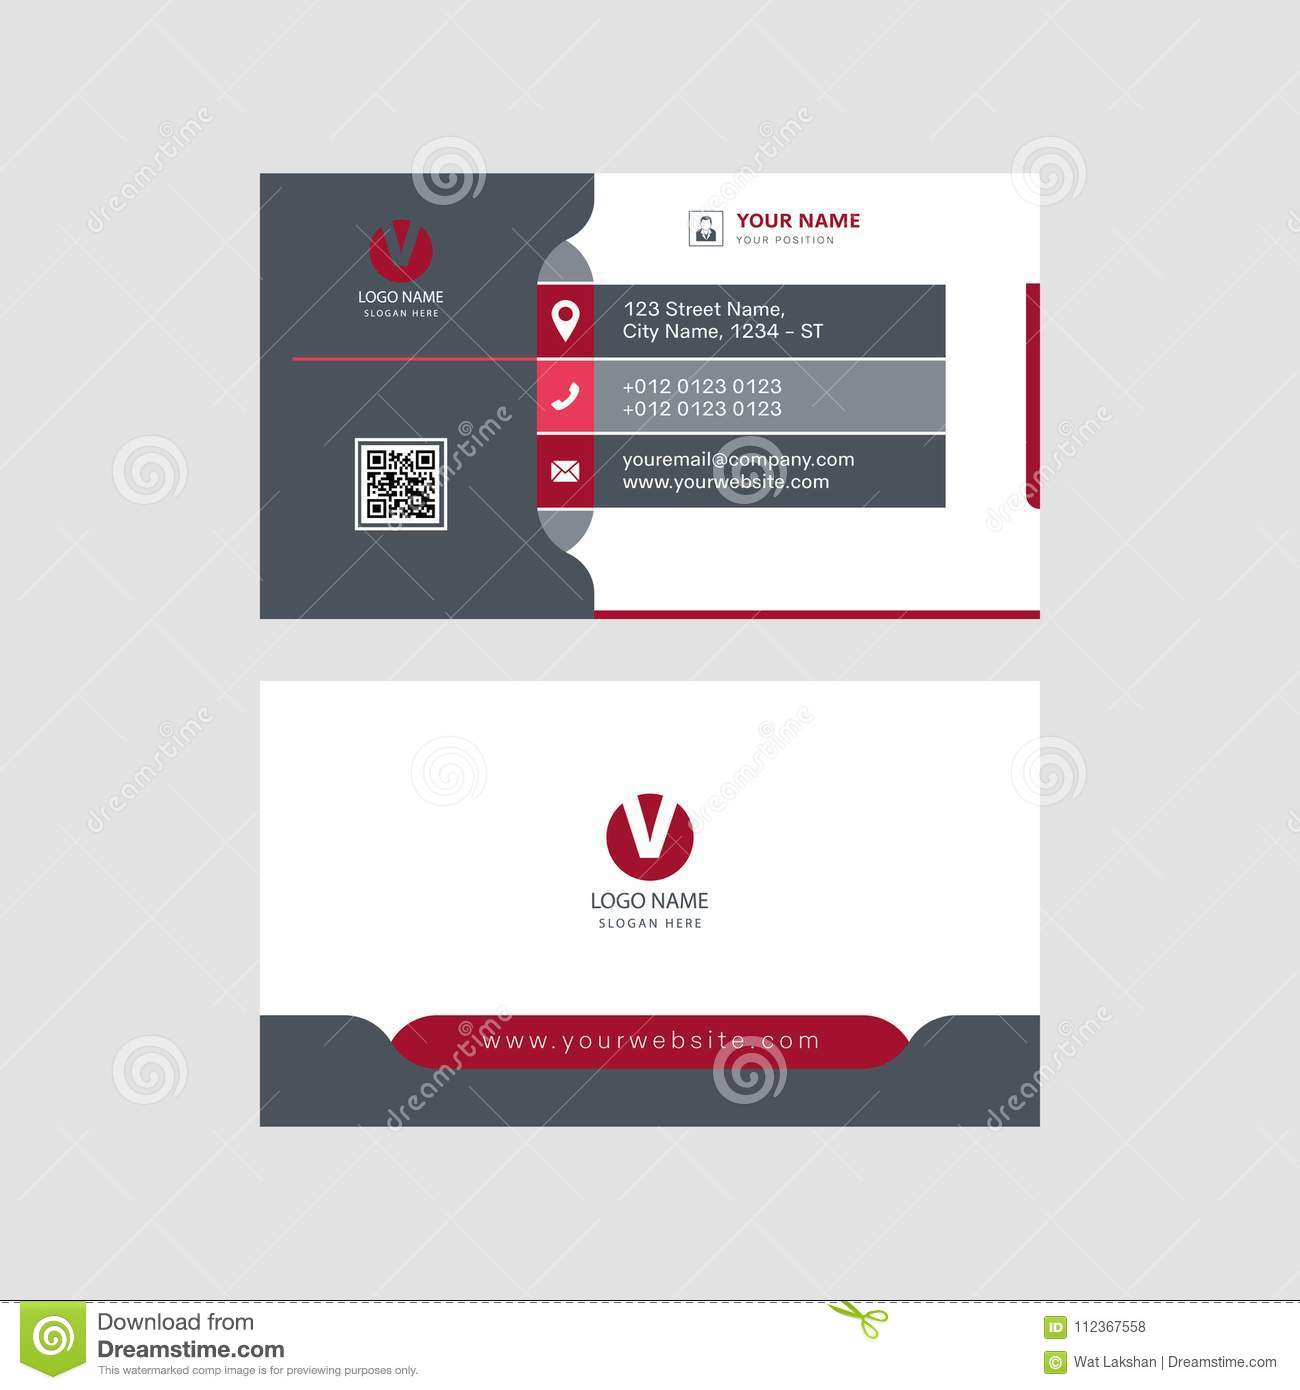 Modern Profesional Eyectching Business Card Design Visiting